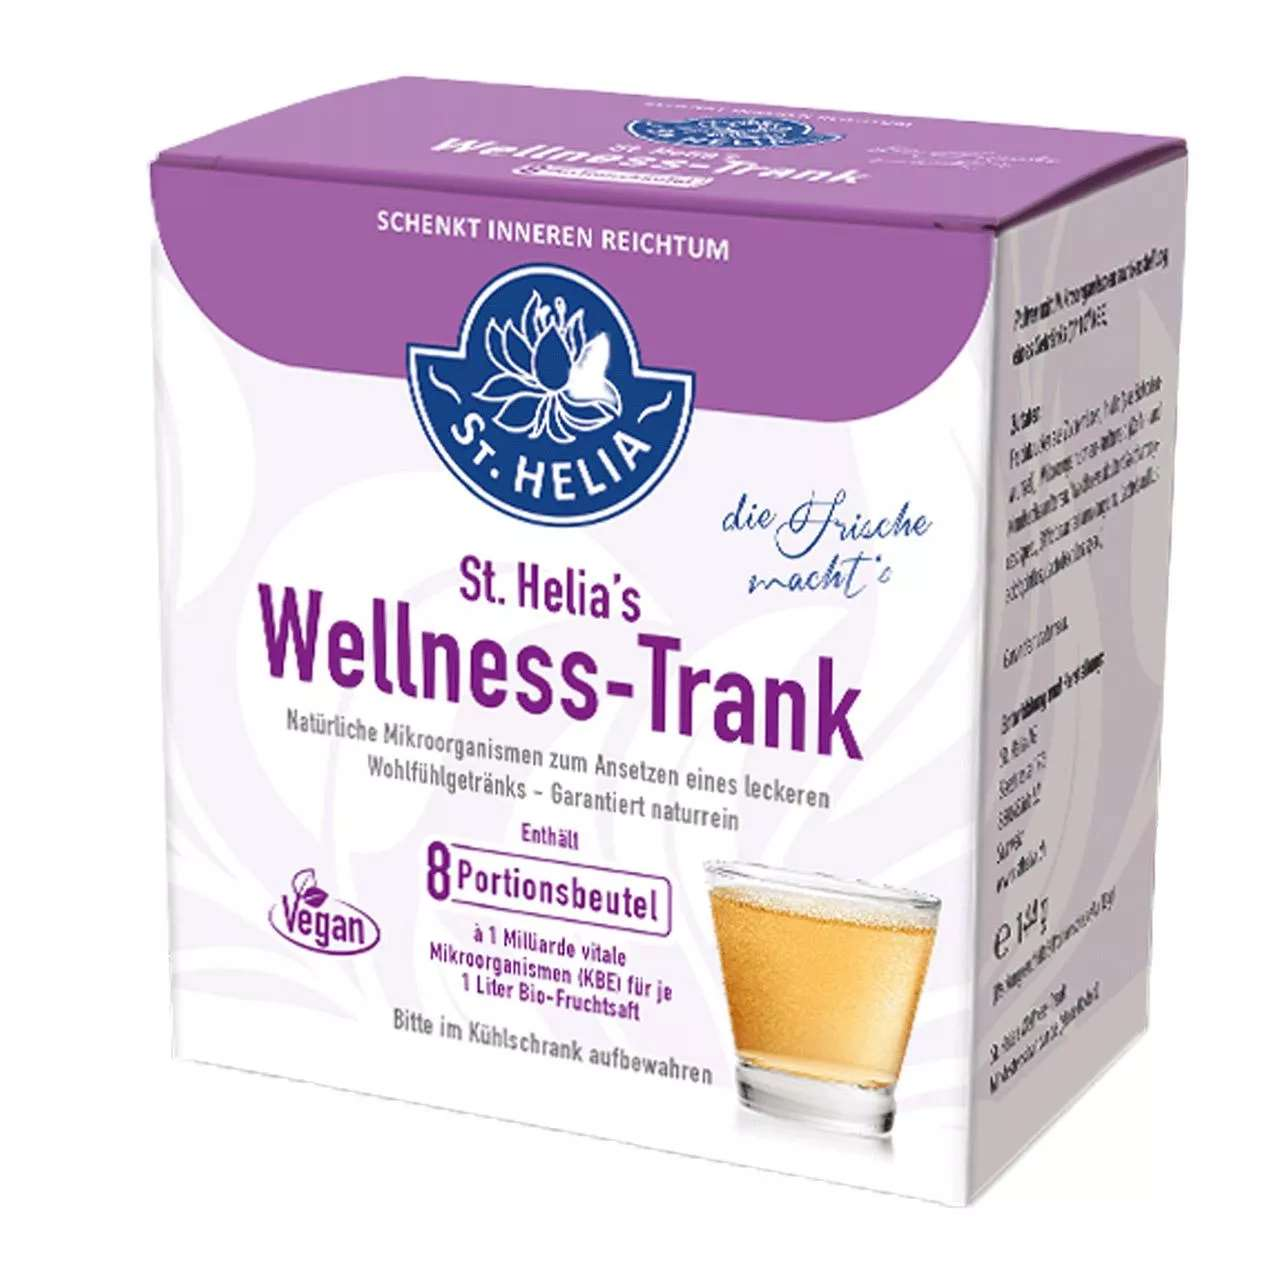 St. Helia's Wellness-Trank, 8 Port.beutel, vegan